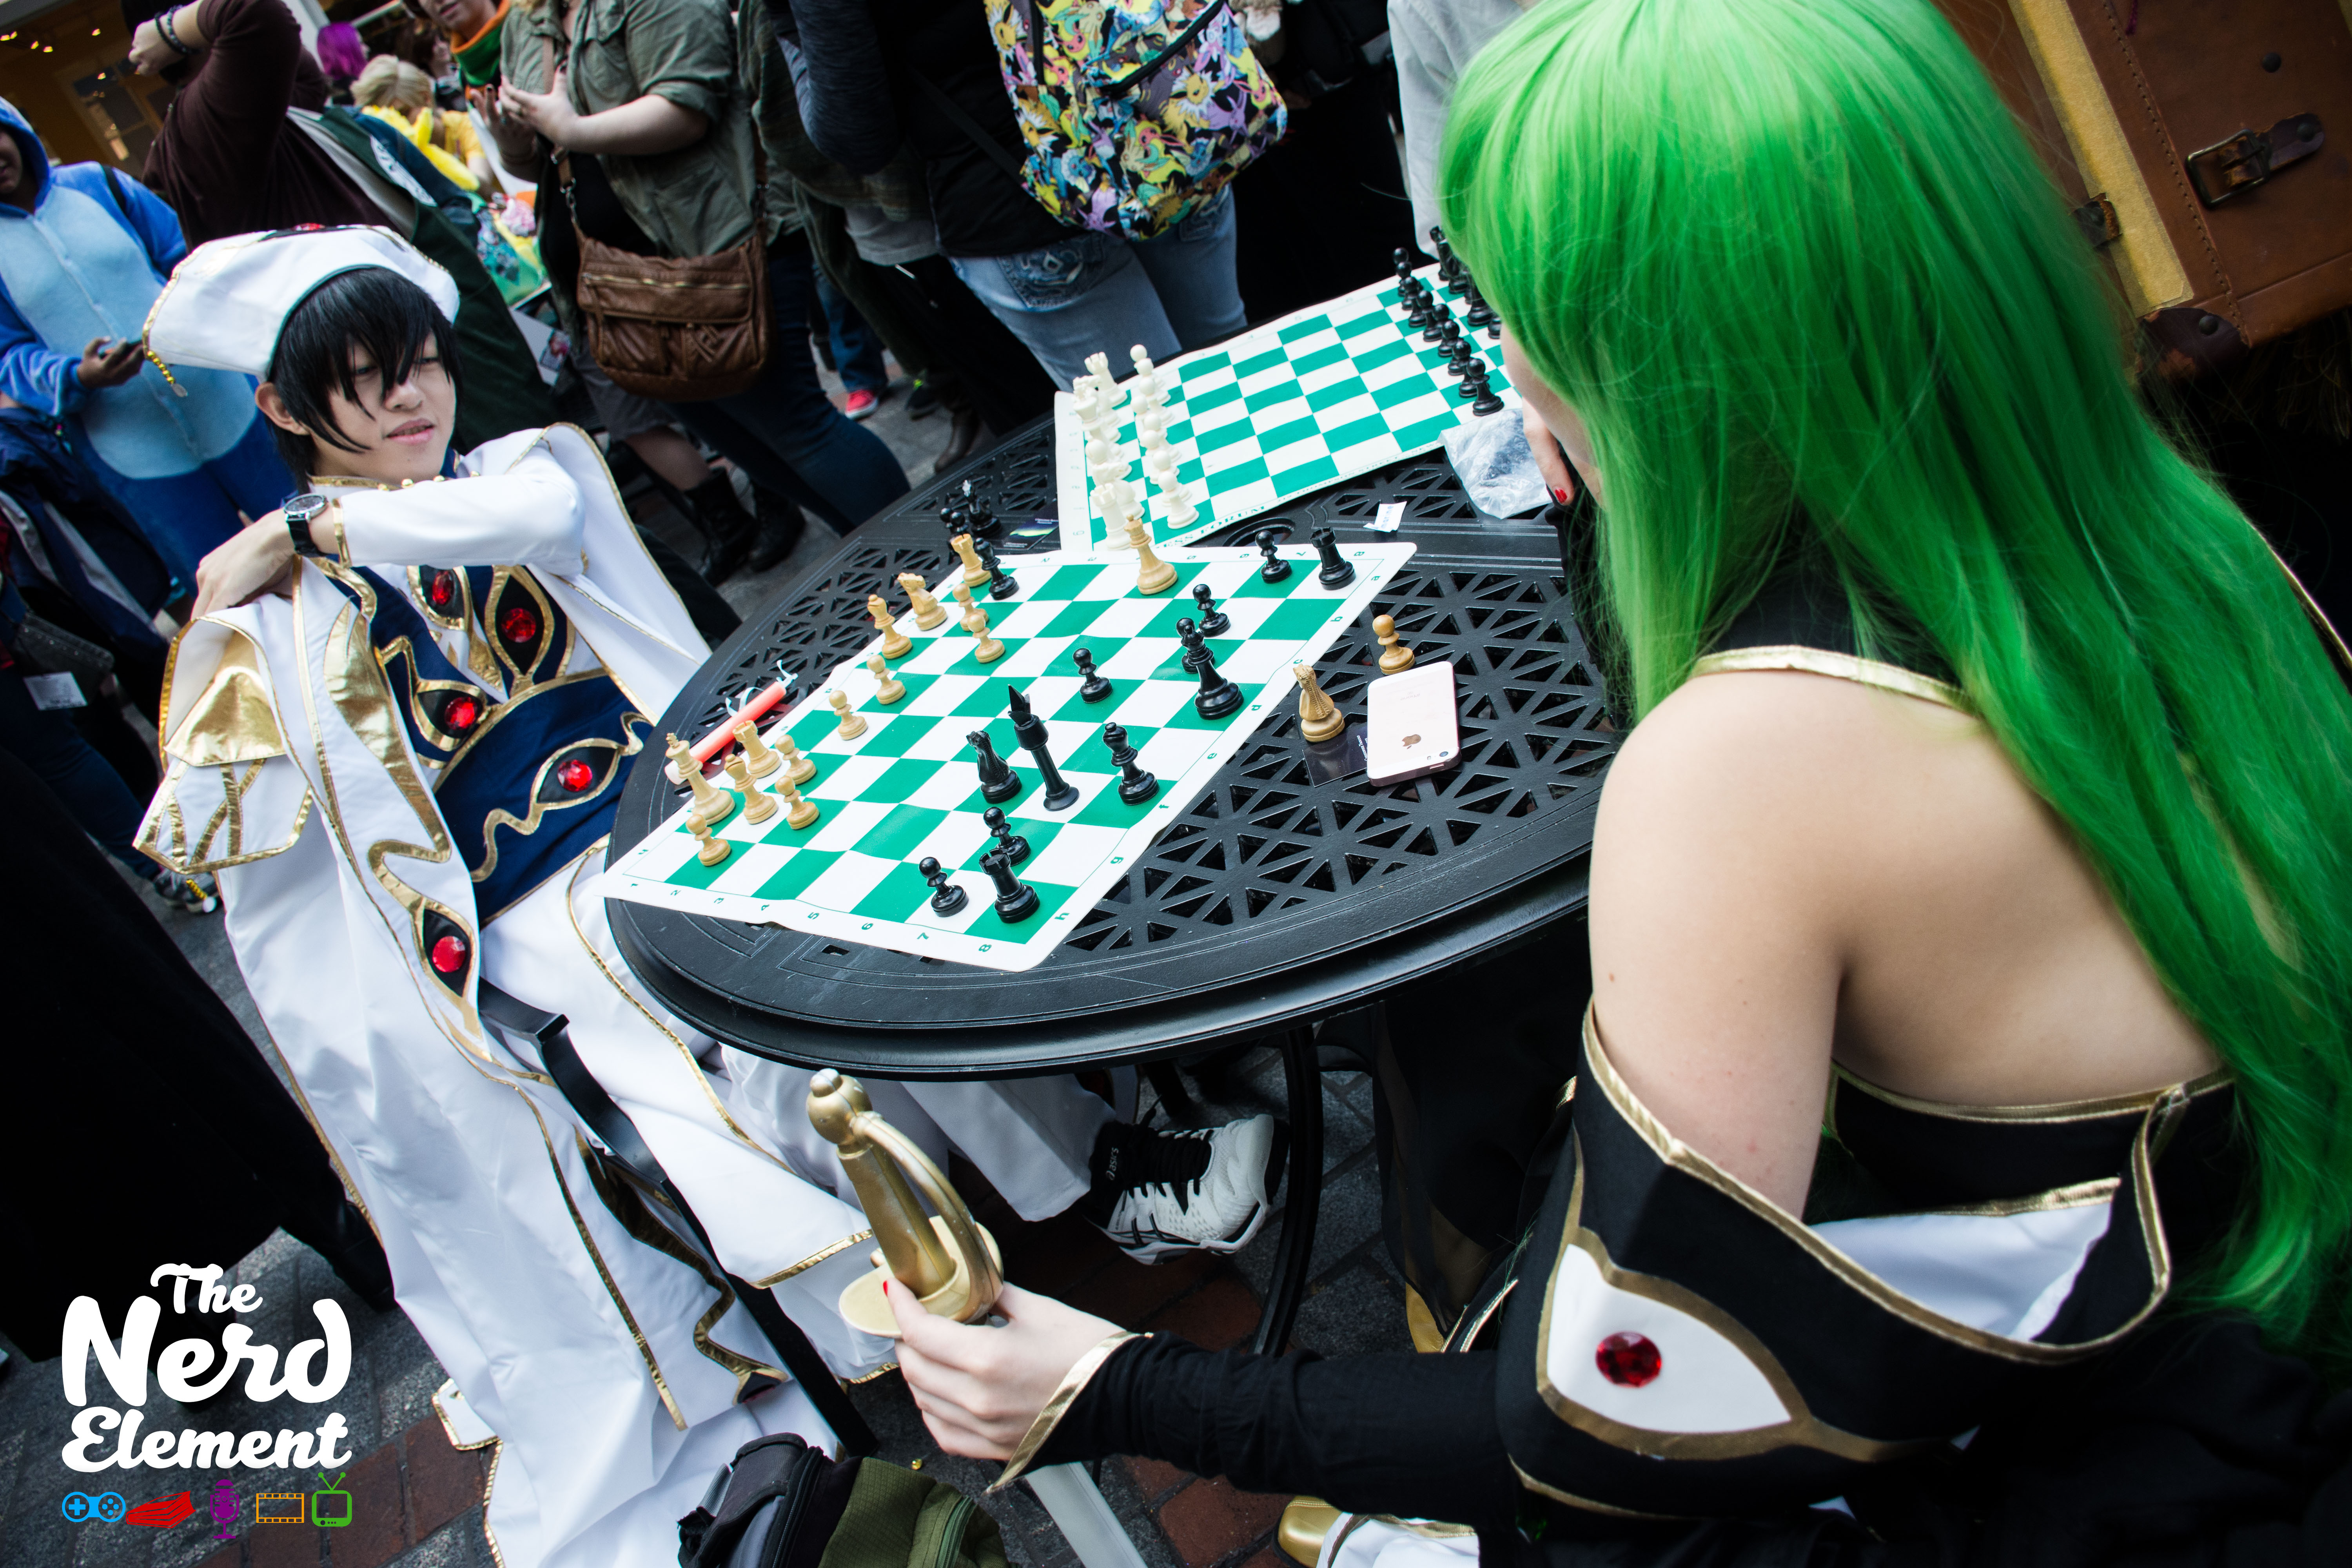 Emperor Lelouch and CC - Code Geass Cosplayers unknown